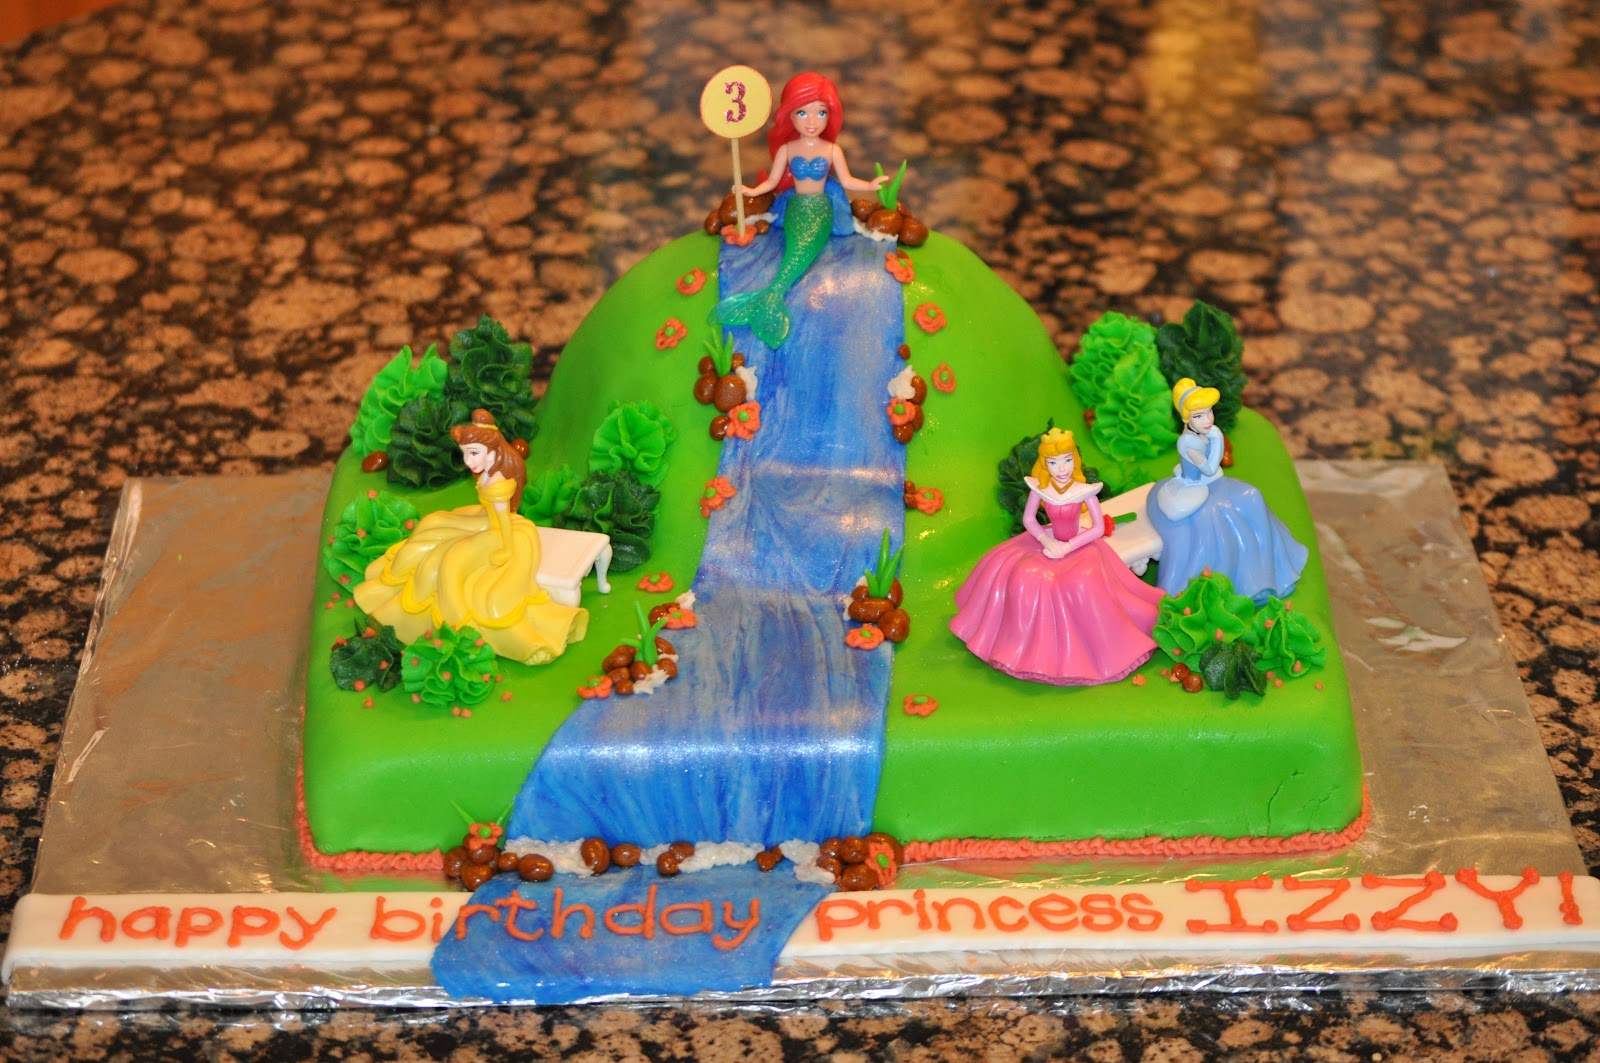 Disney Princess Birthday Party events to CELEBRATE